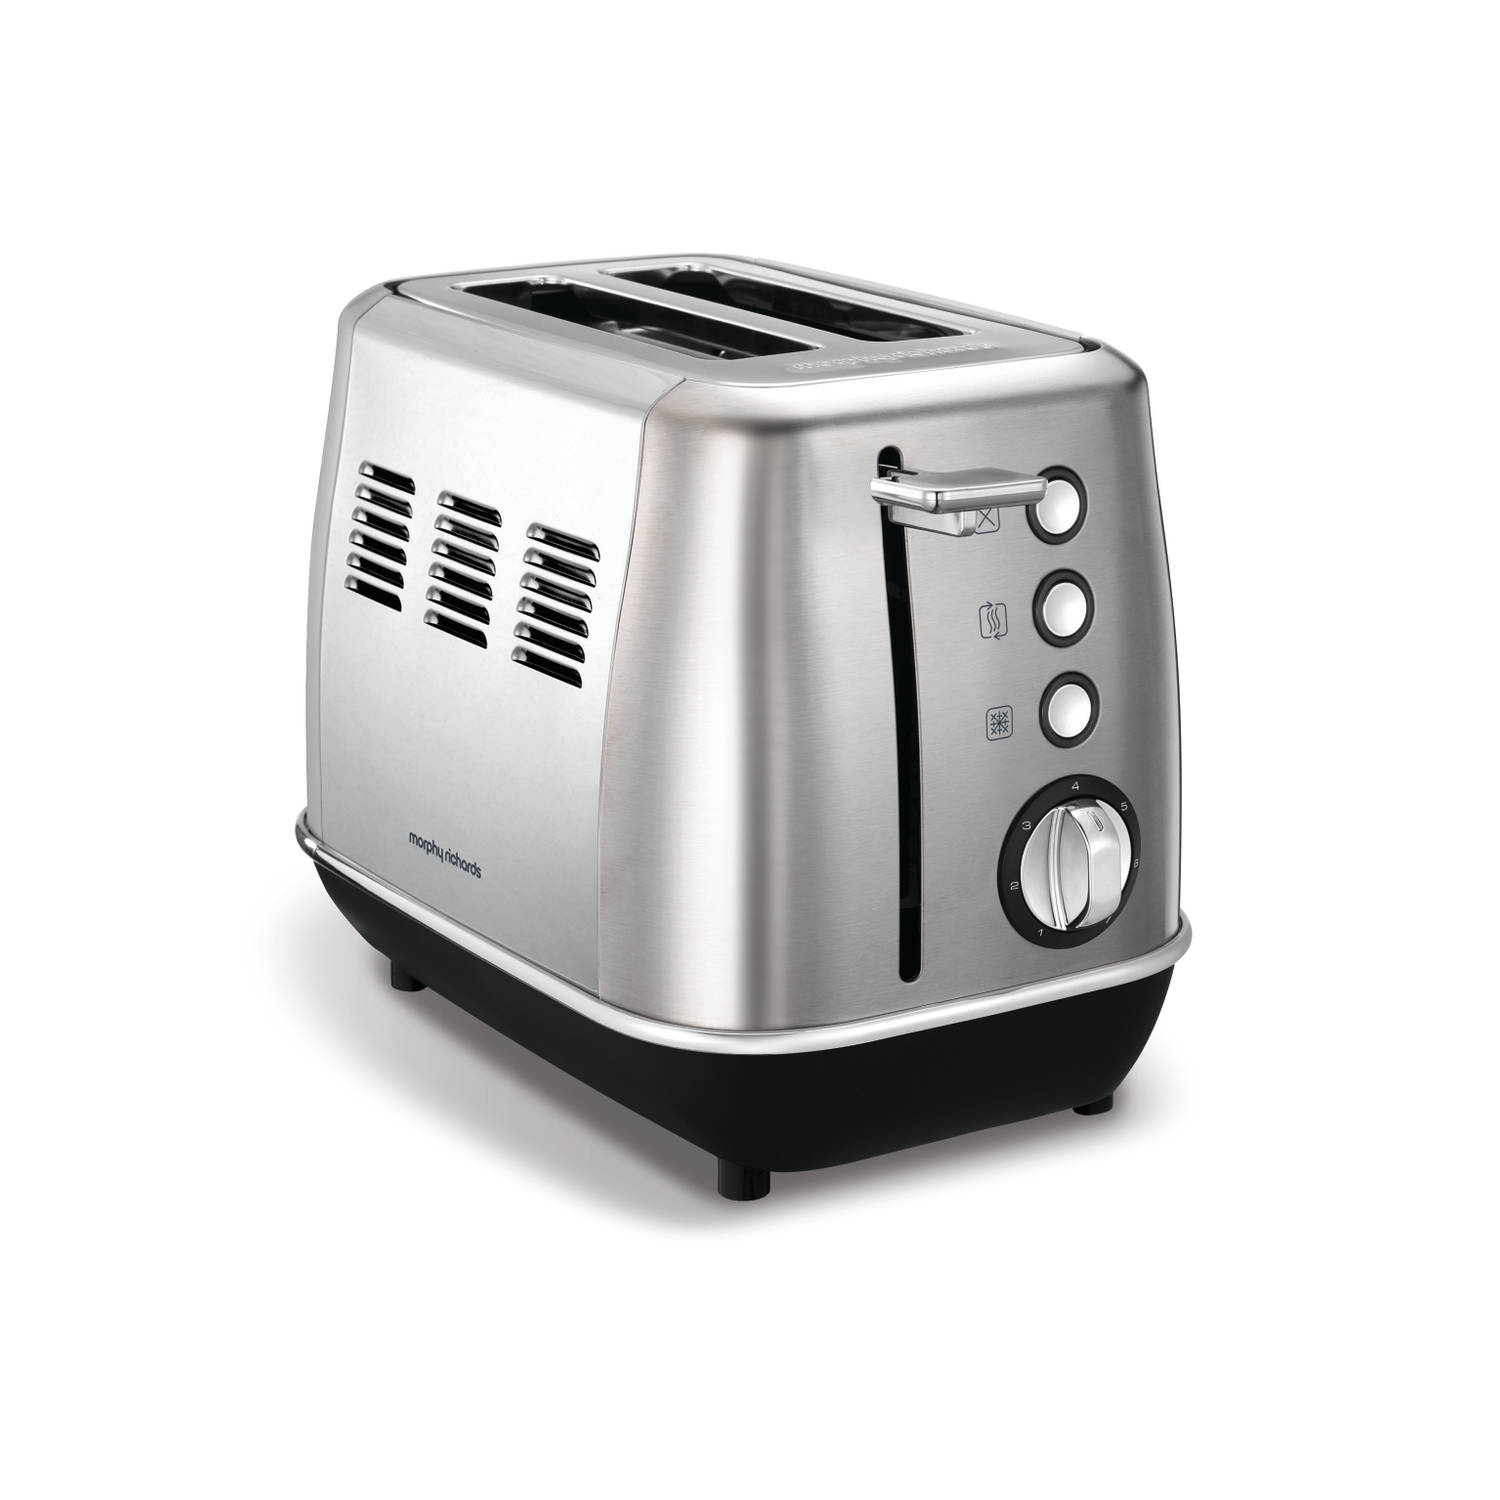 Morphy Richards broodrooster Evoke - RVS